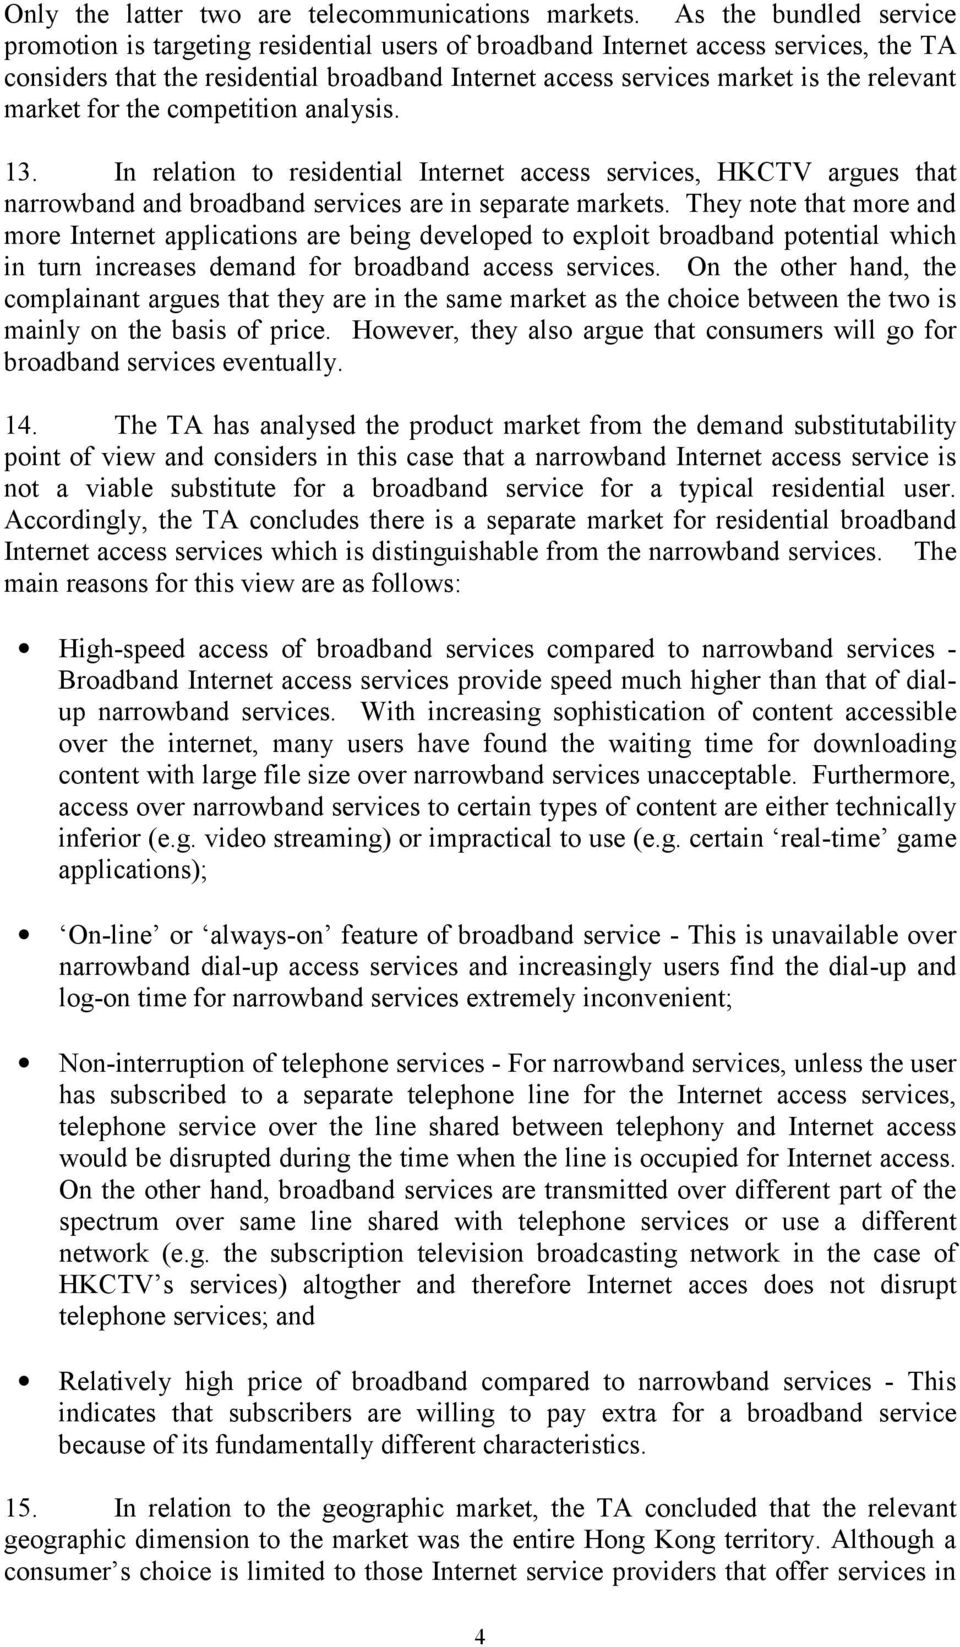 market for the competition analysis. 13. In relation to residential Internet access services, HKCTV argues that narrowband and broadband services are in separate markets.